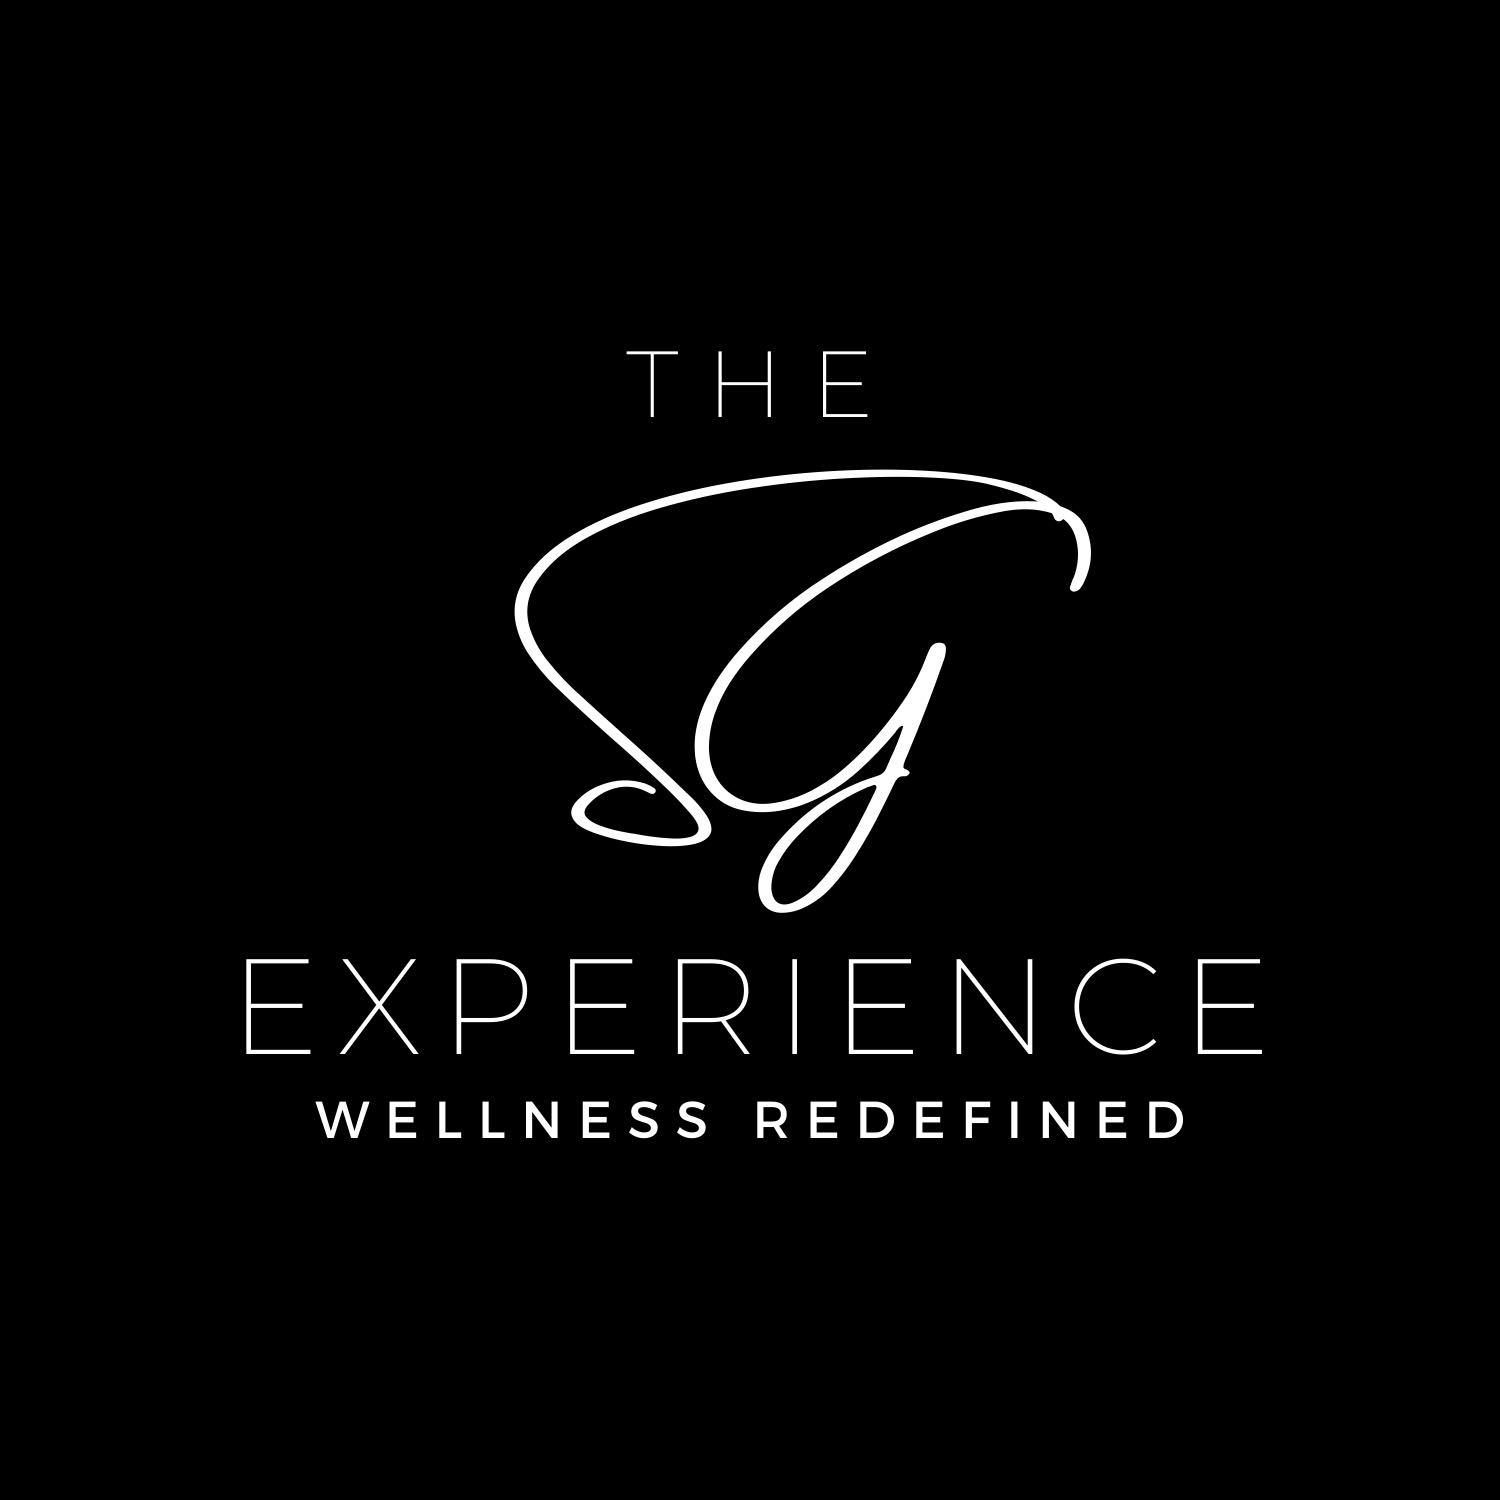 The SG Experience, Wellness Redefined.